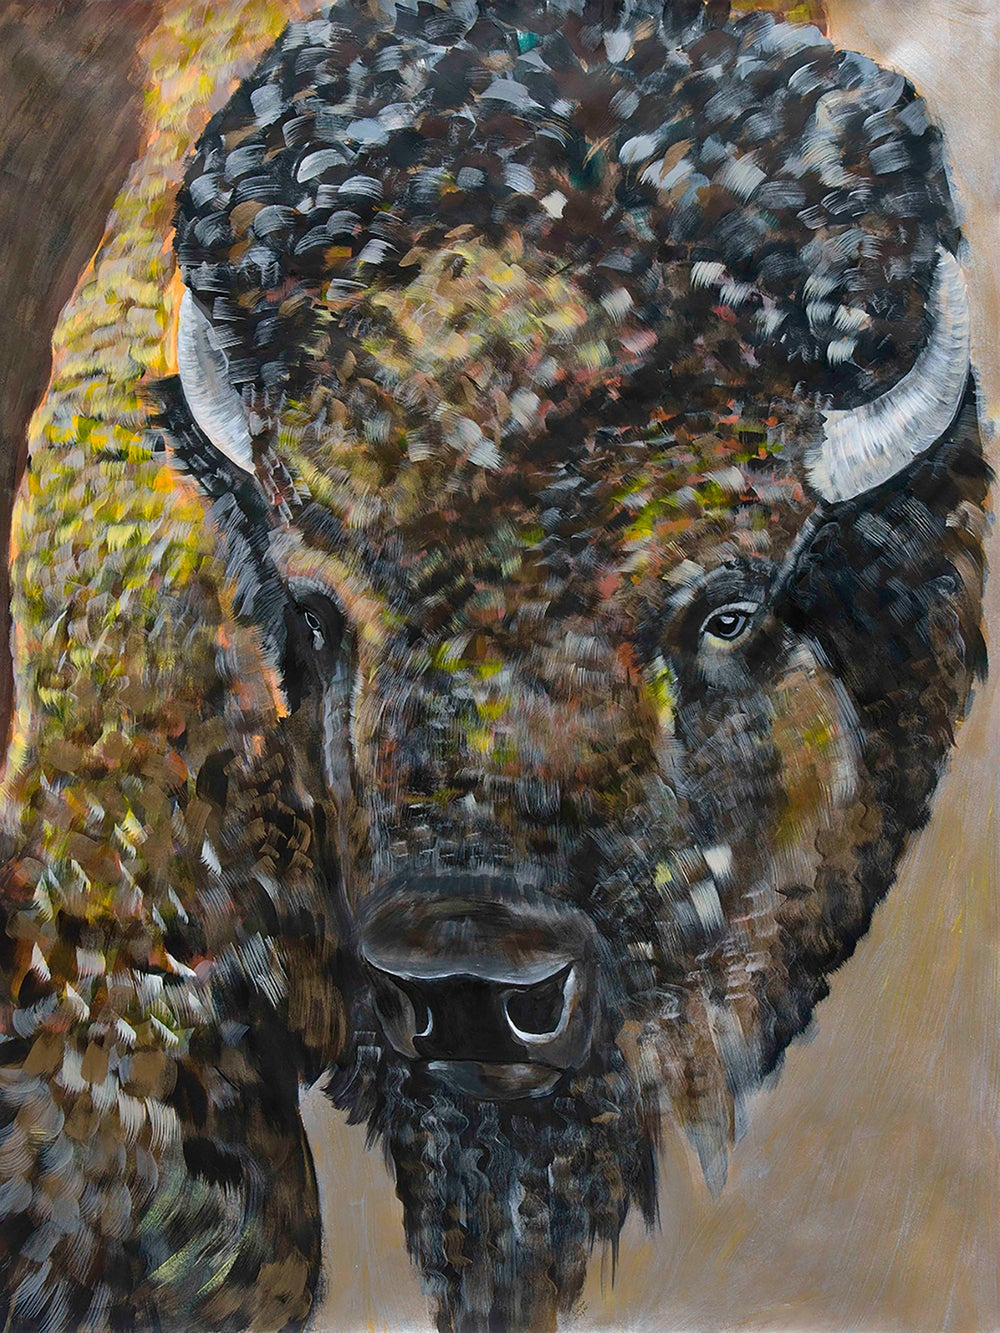 Image of Fine Art Giclee print reproduction of original Bison/Buffalo painting by Natalie Wright